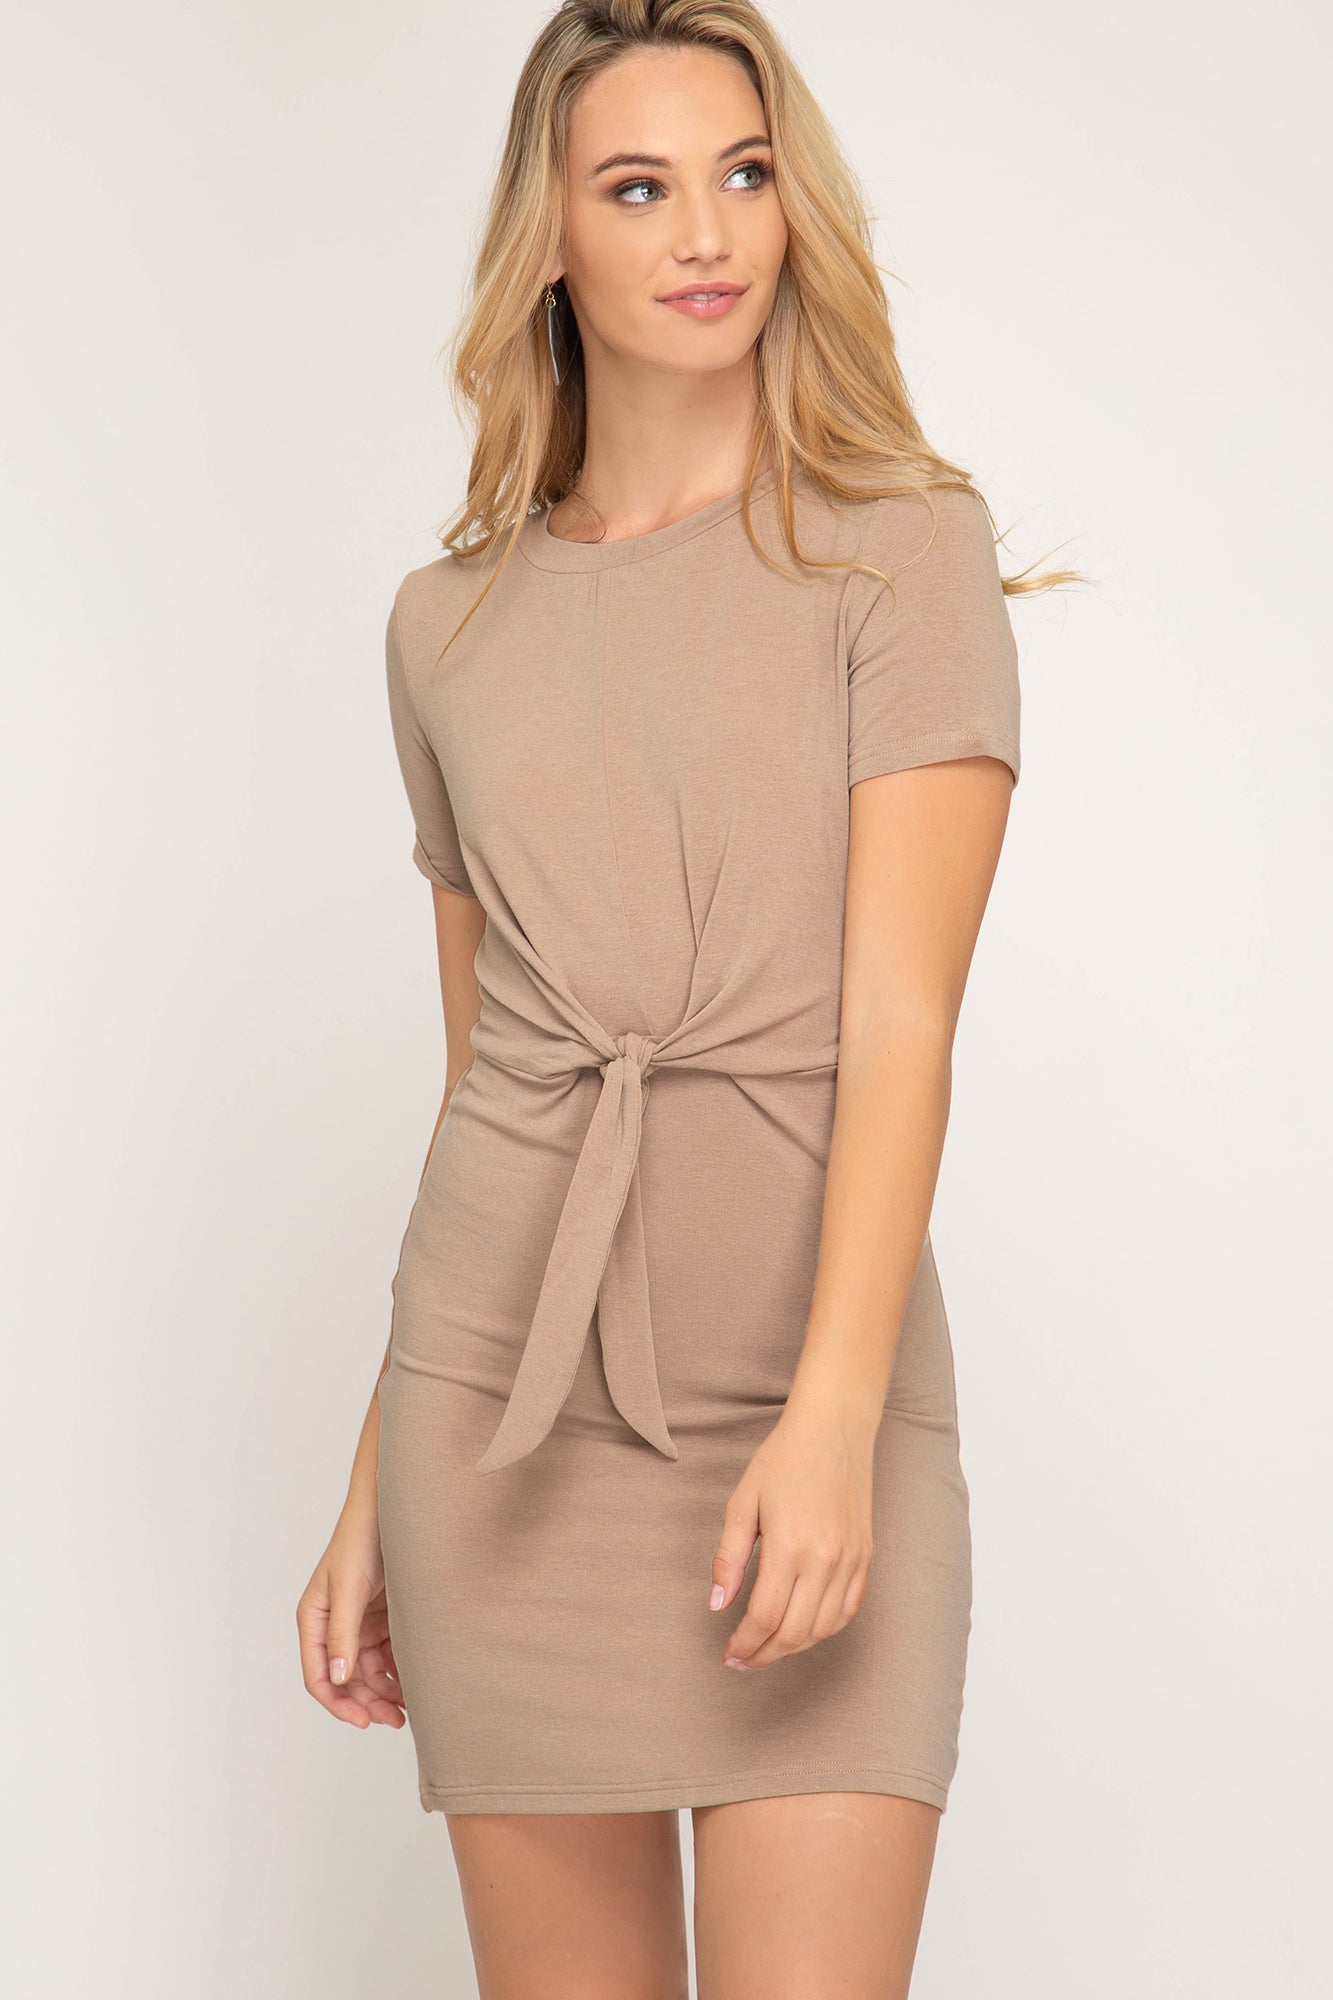 Silky Soft Mini Dress With Front Tie